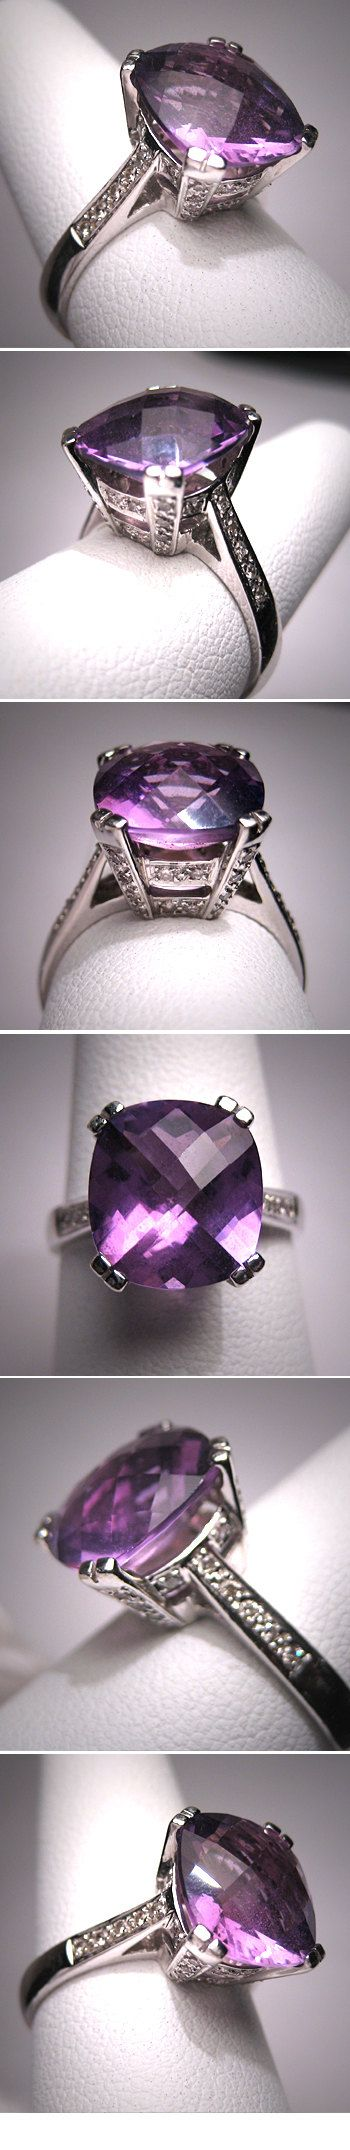 Vintage Amethyst Diamond Wedding Ring White by AawsombleiJewelry, $1485.00